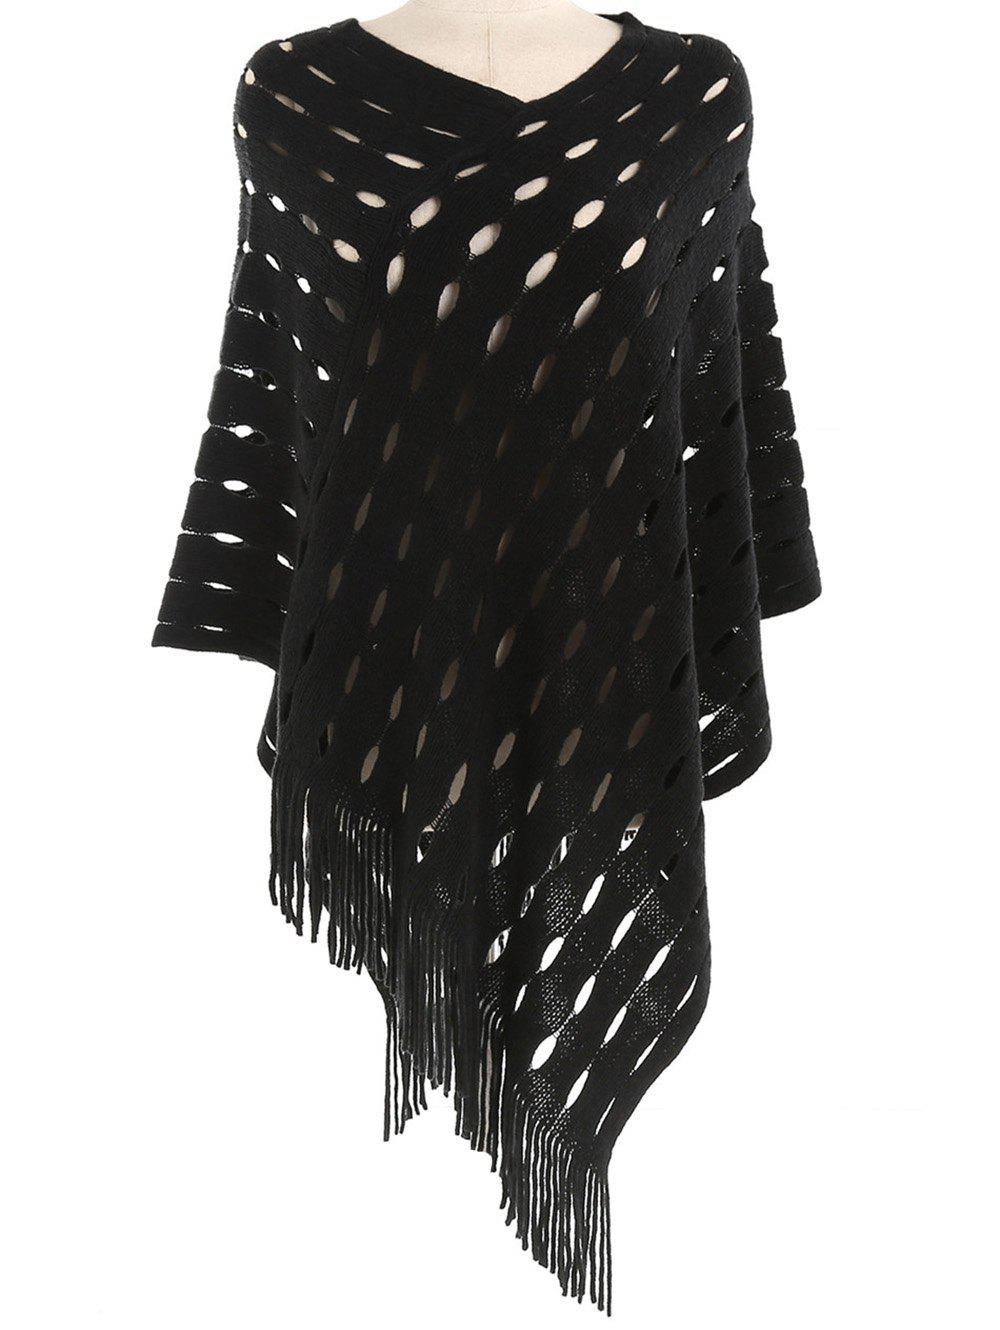 Vintage Hollow Out Fringed Oversized Scarf - BLACK